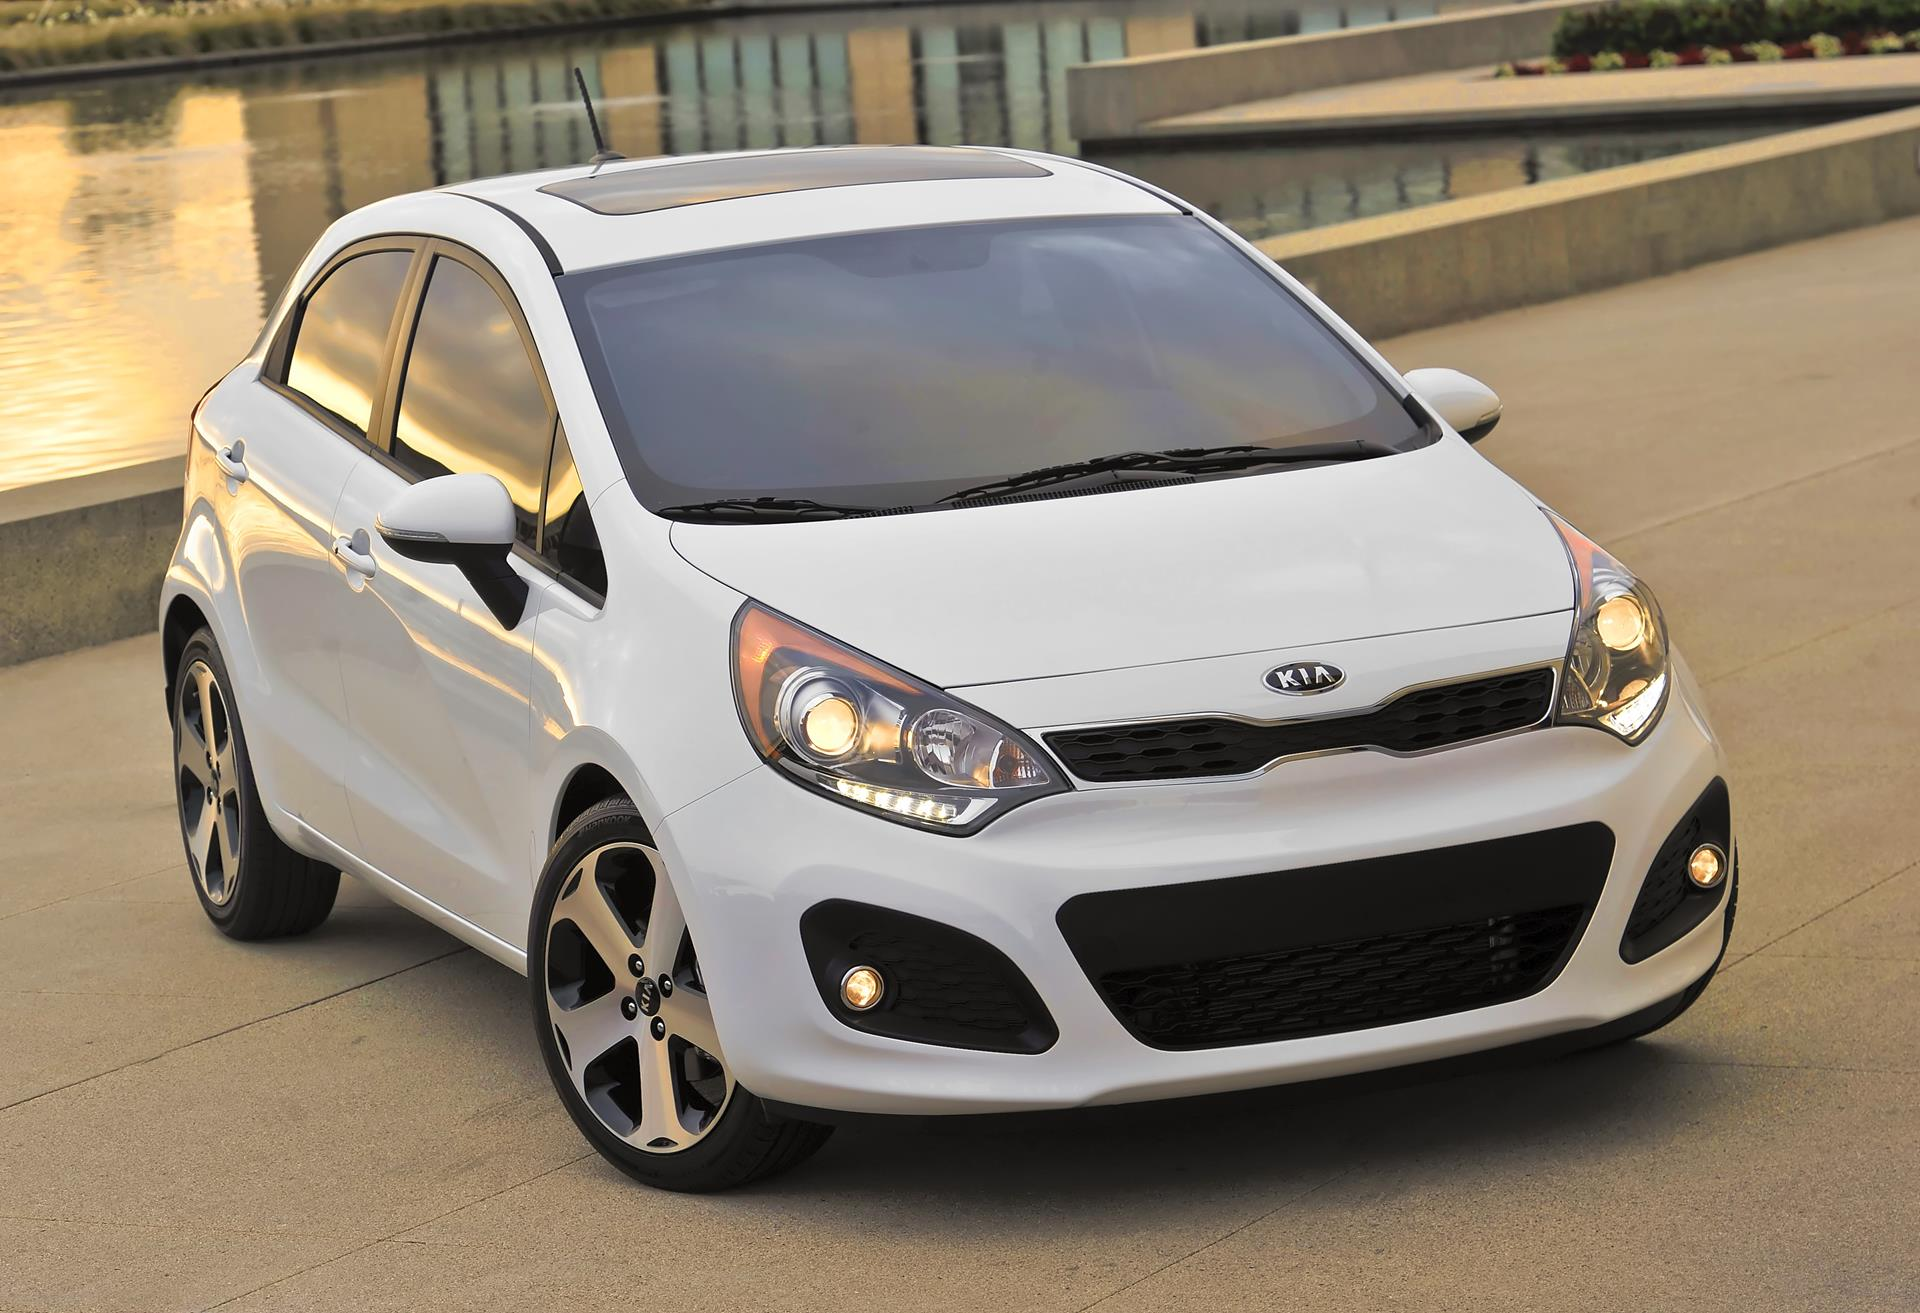 2015 kia rio 5 door. Black Bedroom Furniture Sets. Home Design Ideas